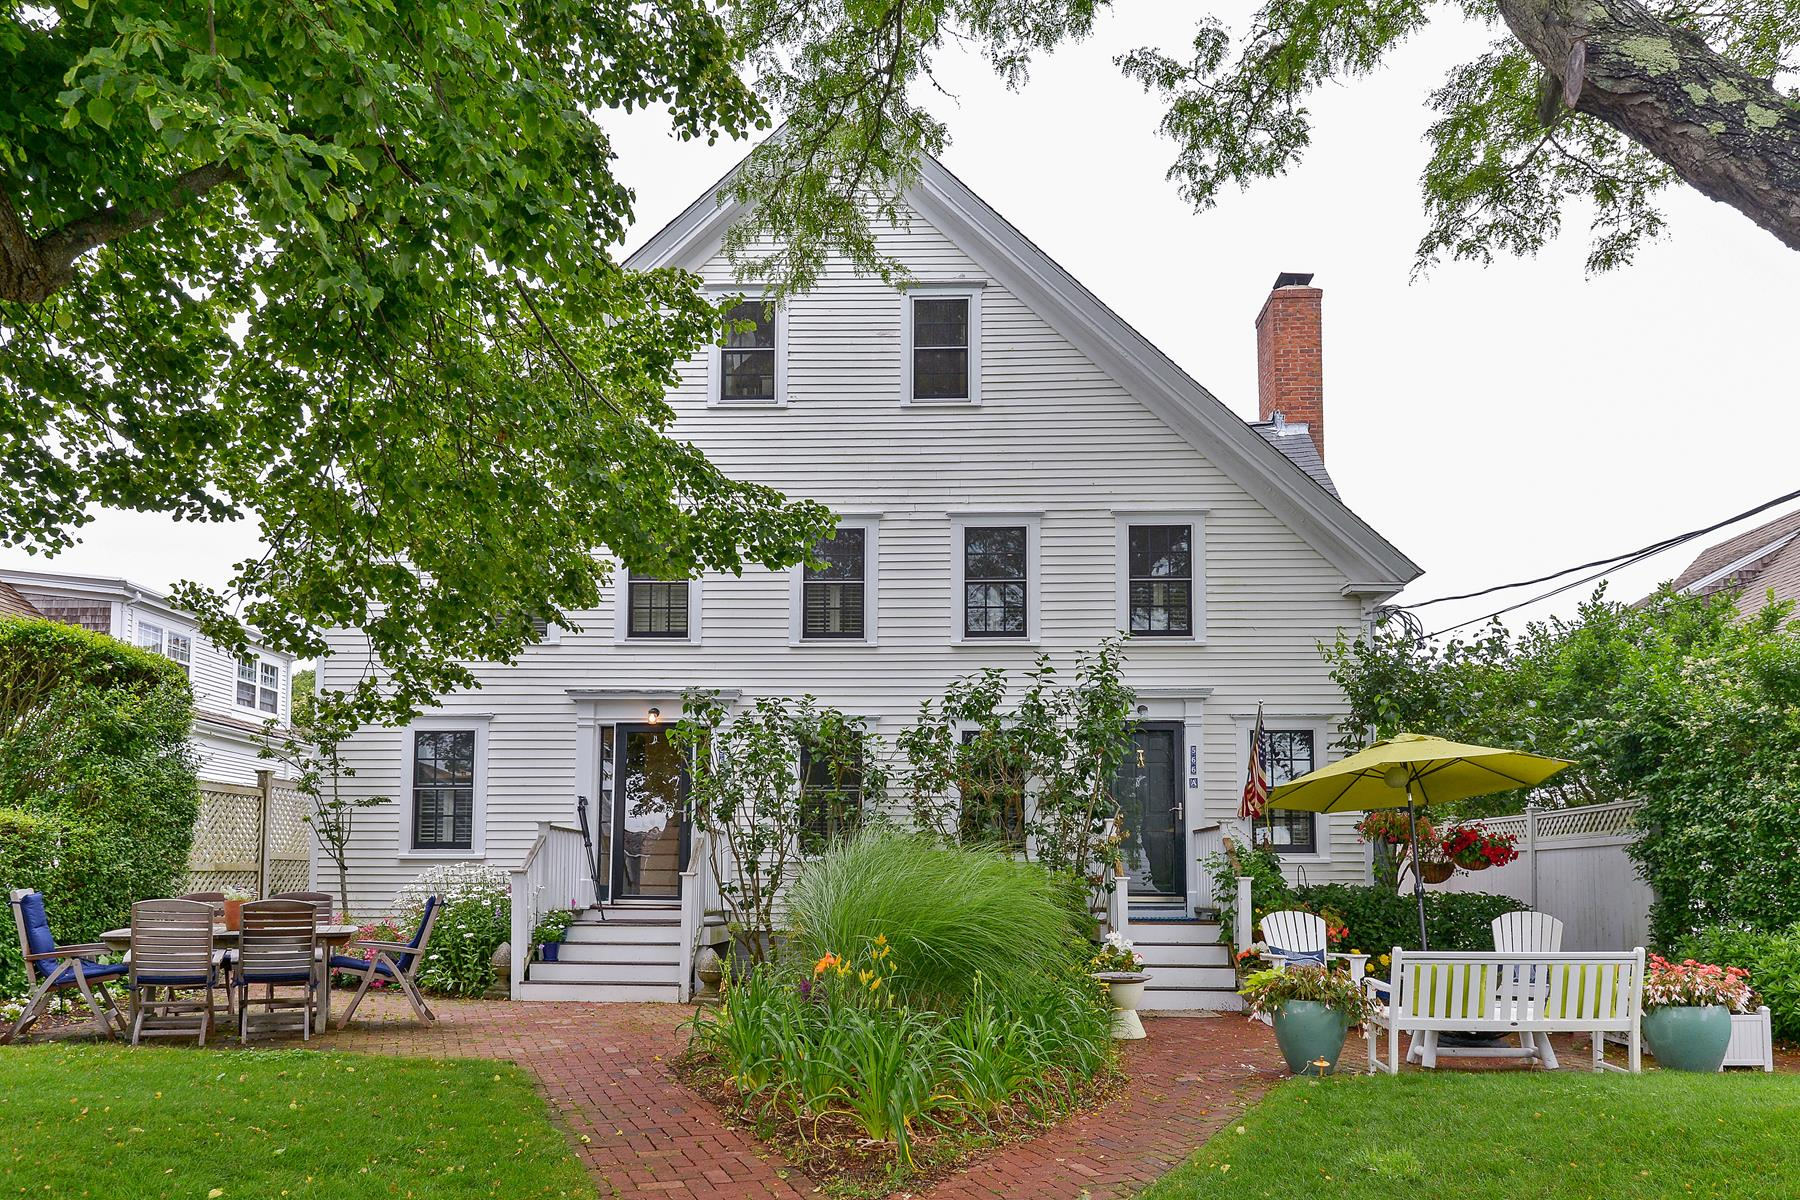 Condominium for Sale at The Windamar House 566 Commercial Street, Unit C Provincetown, Massachusetts, 02657 United States